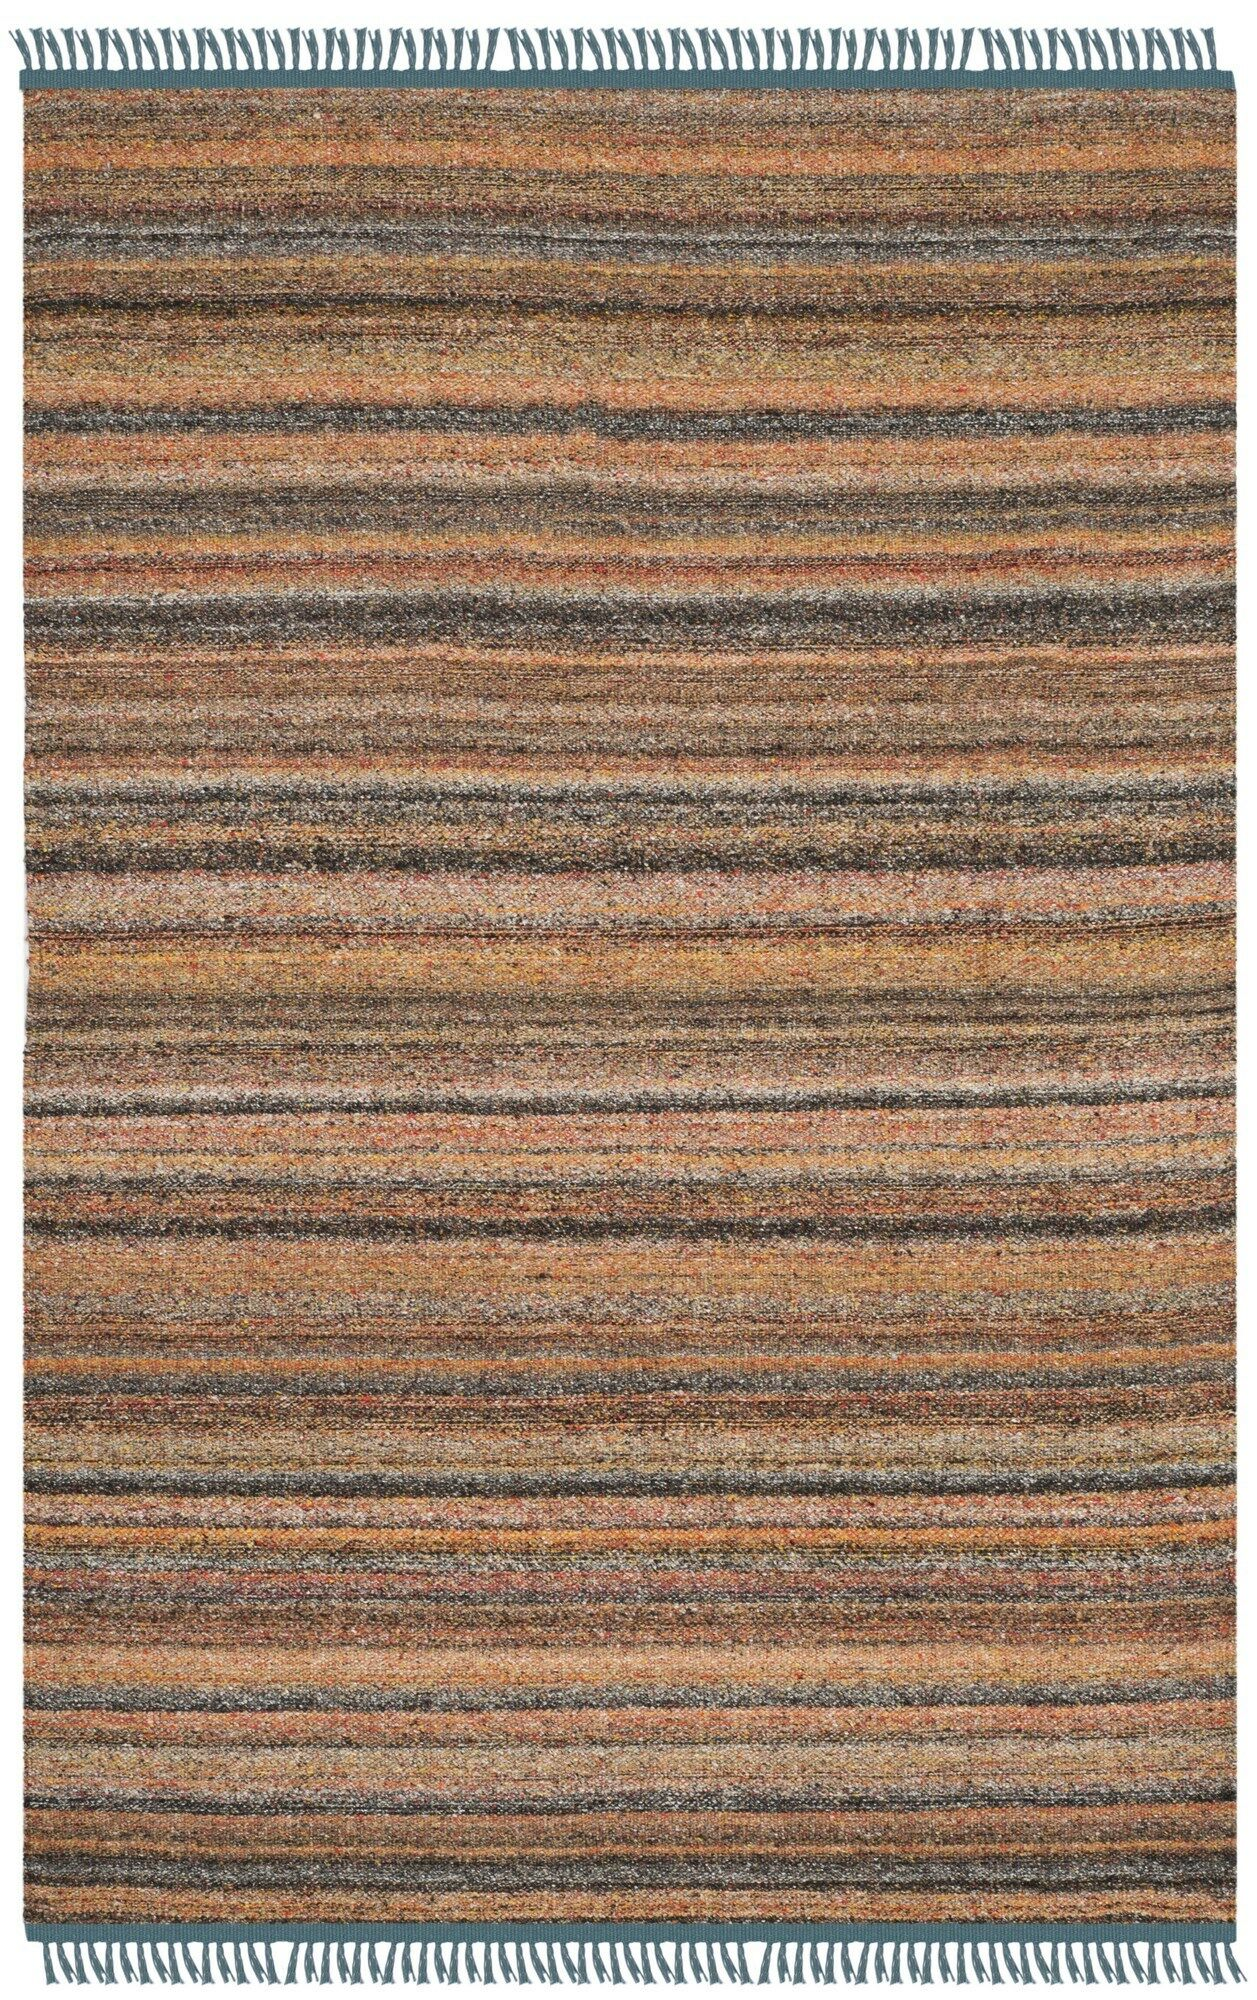 Sojourn Hand-Woven Orange/Blue Area Rug Rug Size: Rectangle 4' x 6'